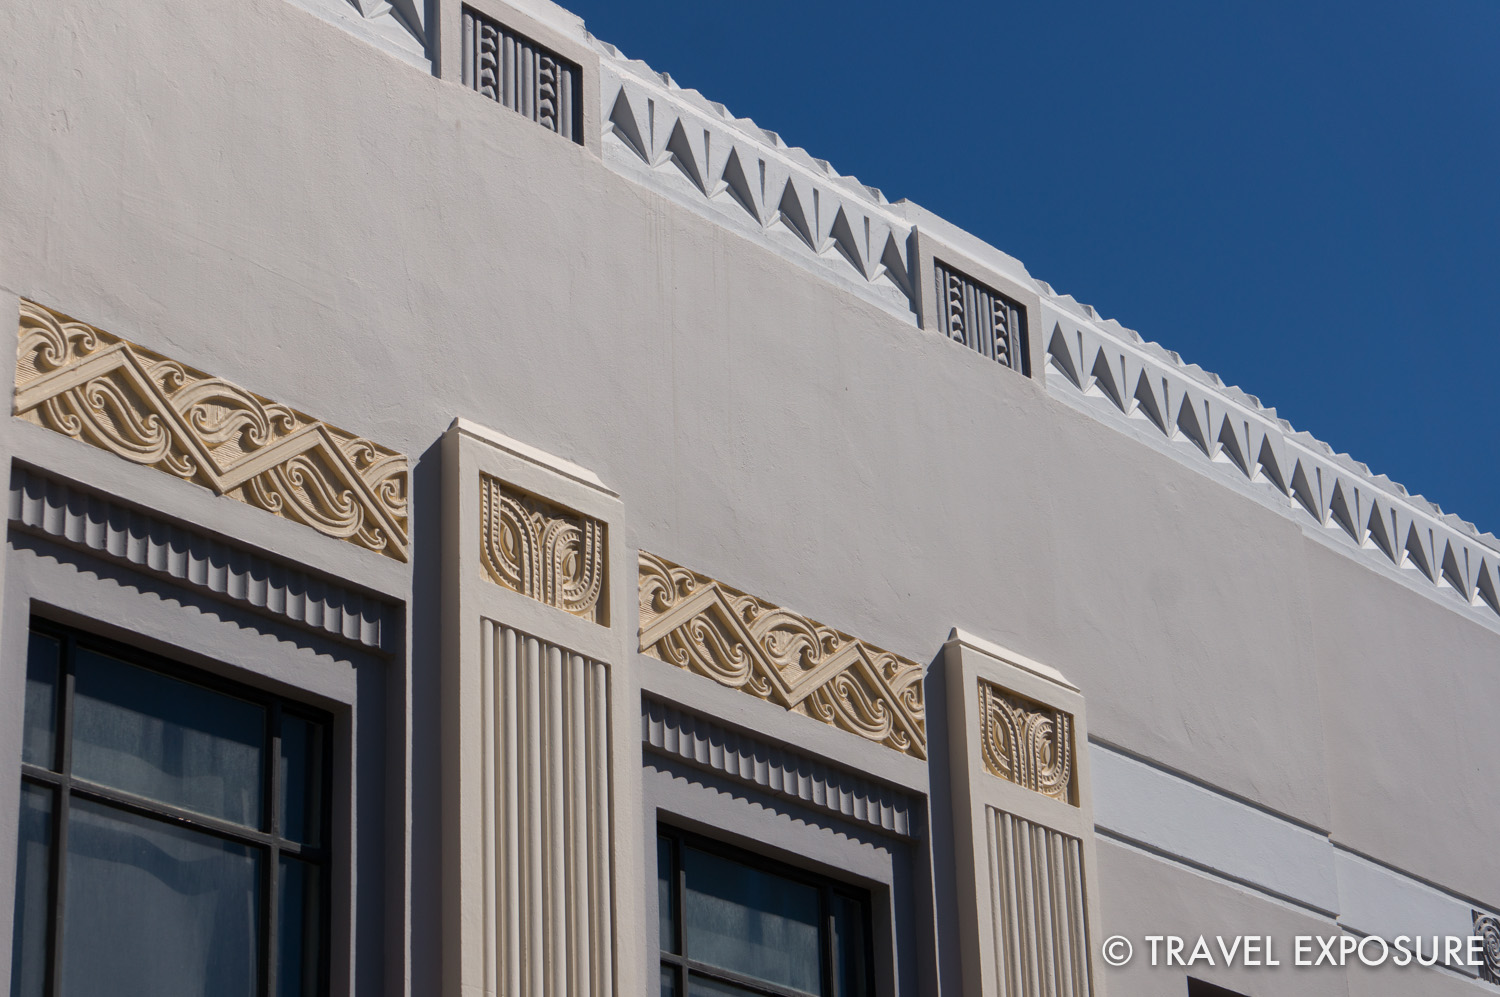 Indigenous Maori designs were often incorporated into the art deco style.